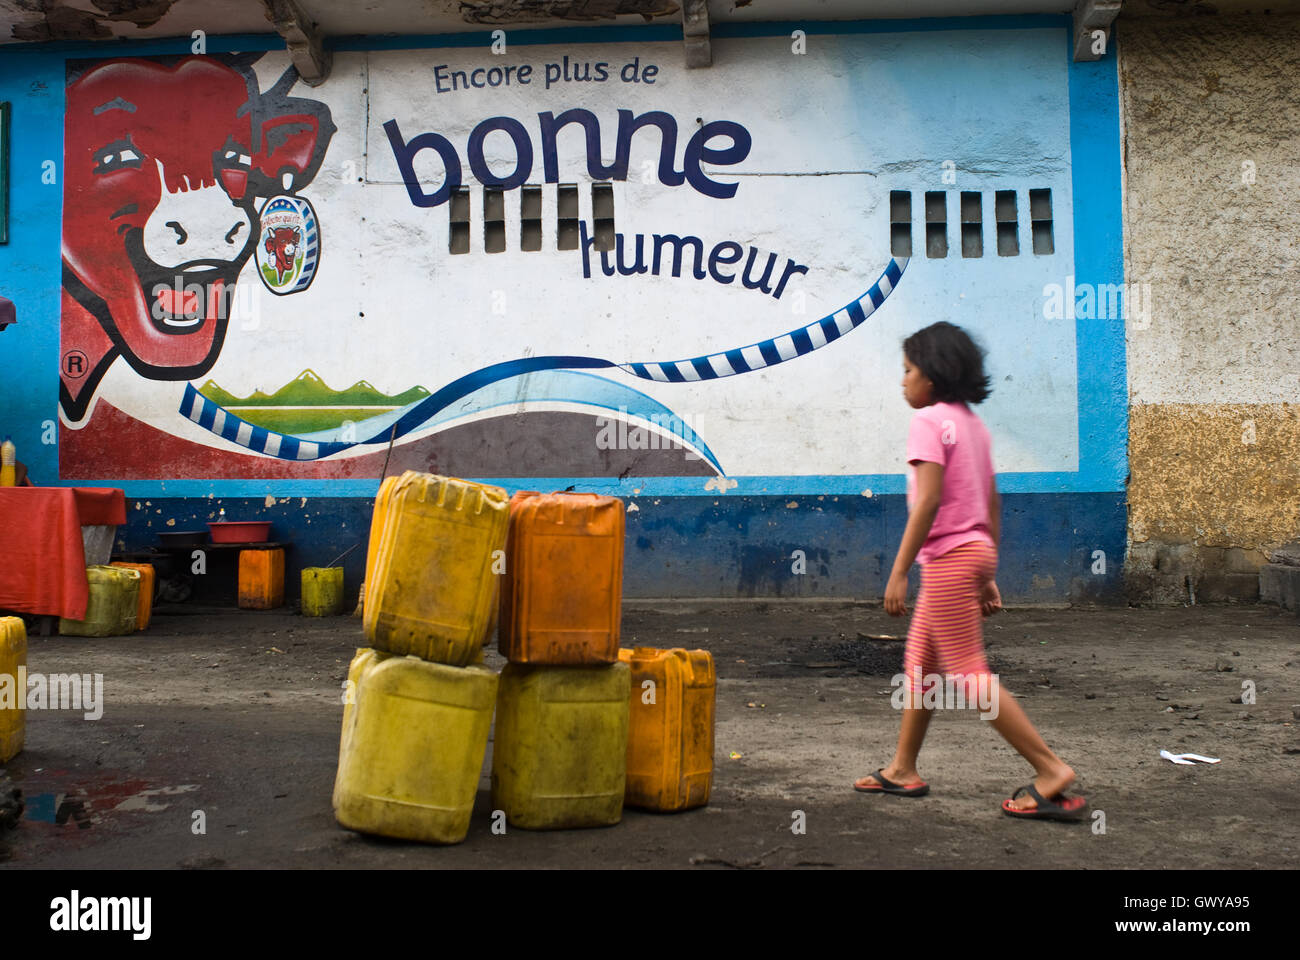 Mural ads for a famous French cheese ( 'La vache qui rit', 'The laughing cow') ( Madagascar) - Stock Image